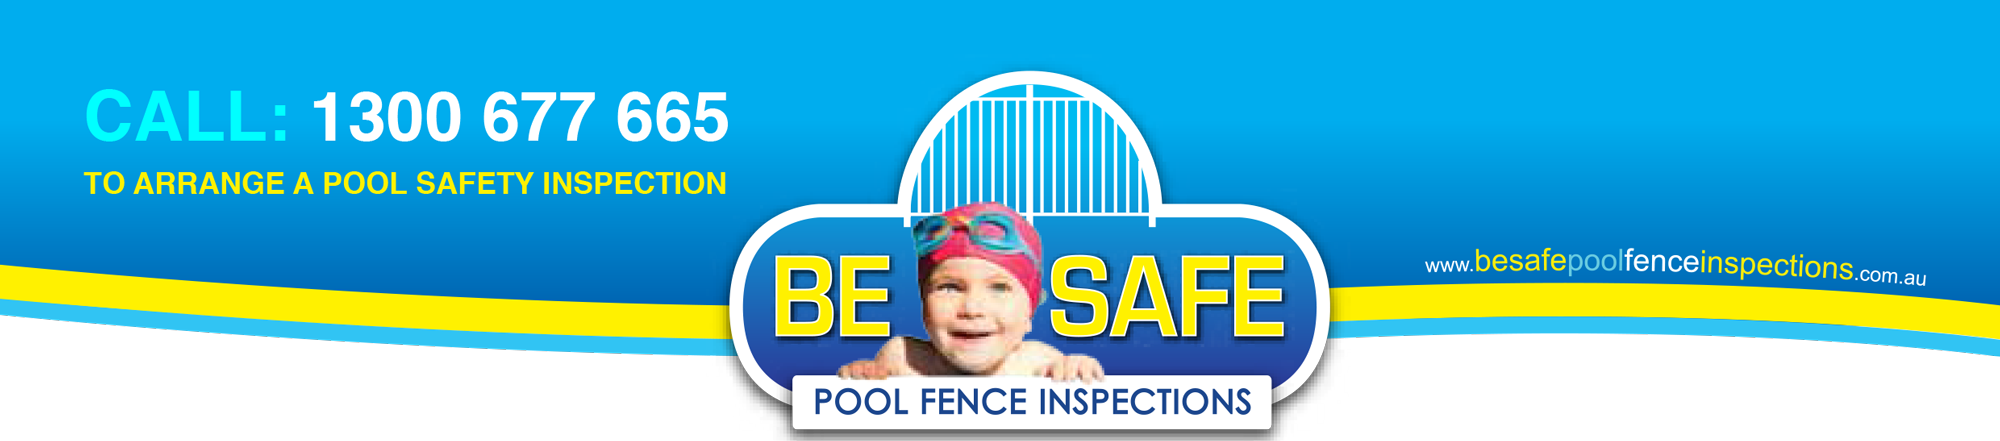 Pool Inspections & Safety Certificates | Be Safe Pool Fence Inspections